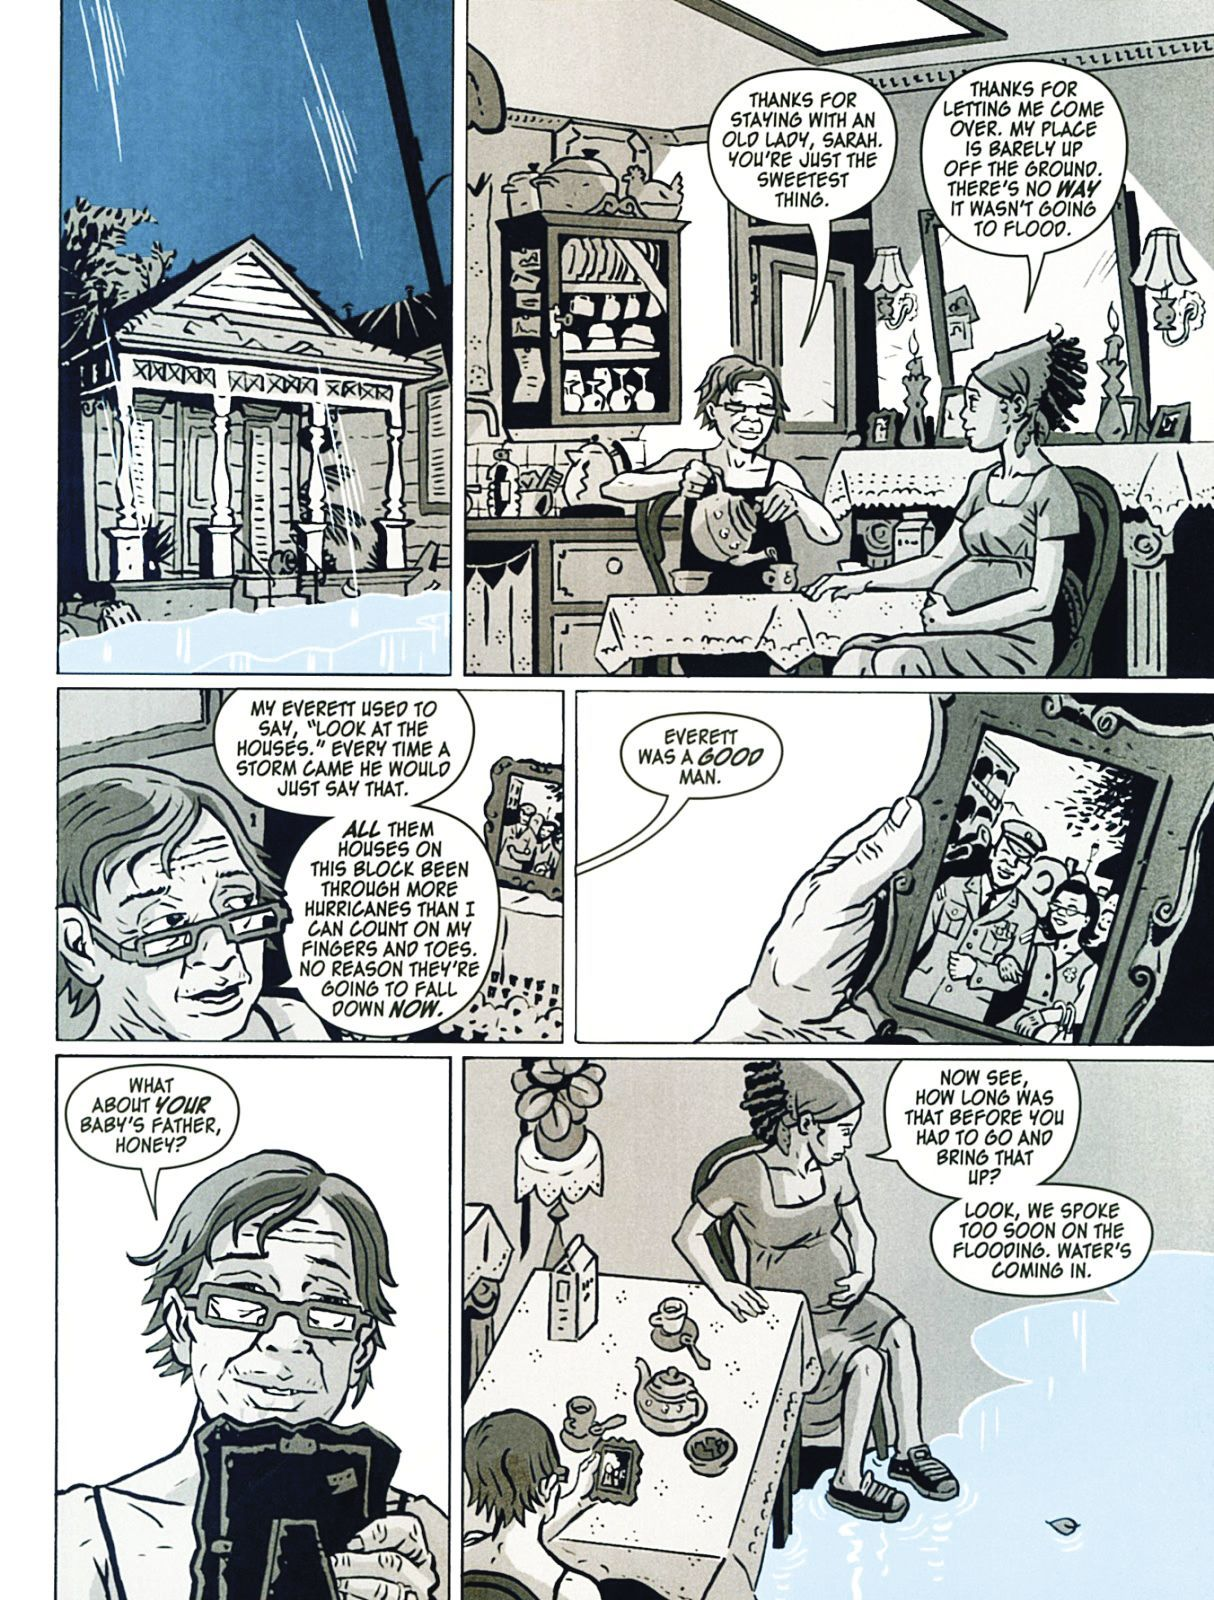 Dark Rain - A New Orleans Story, Mat Johnson and Simone Gane, Vertigo Comics, 2010.